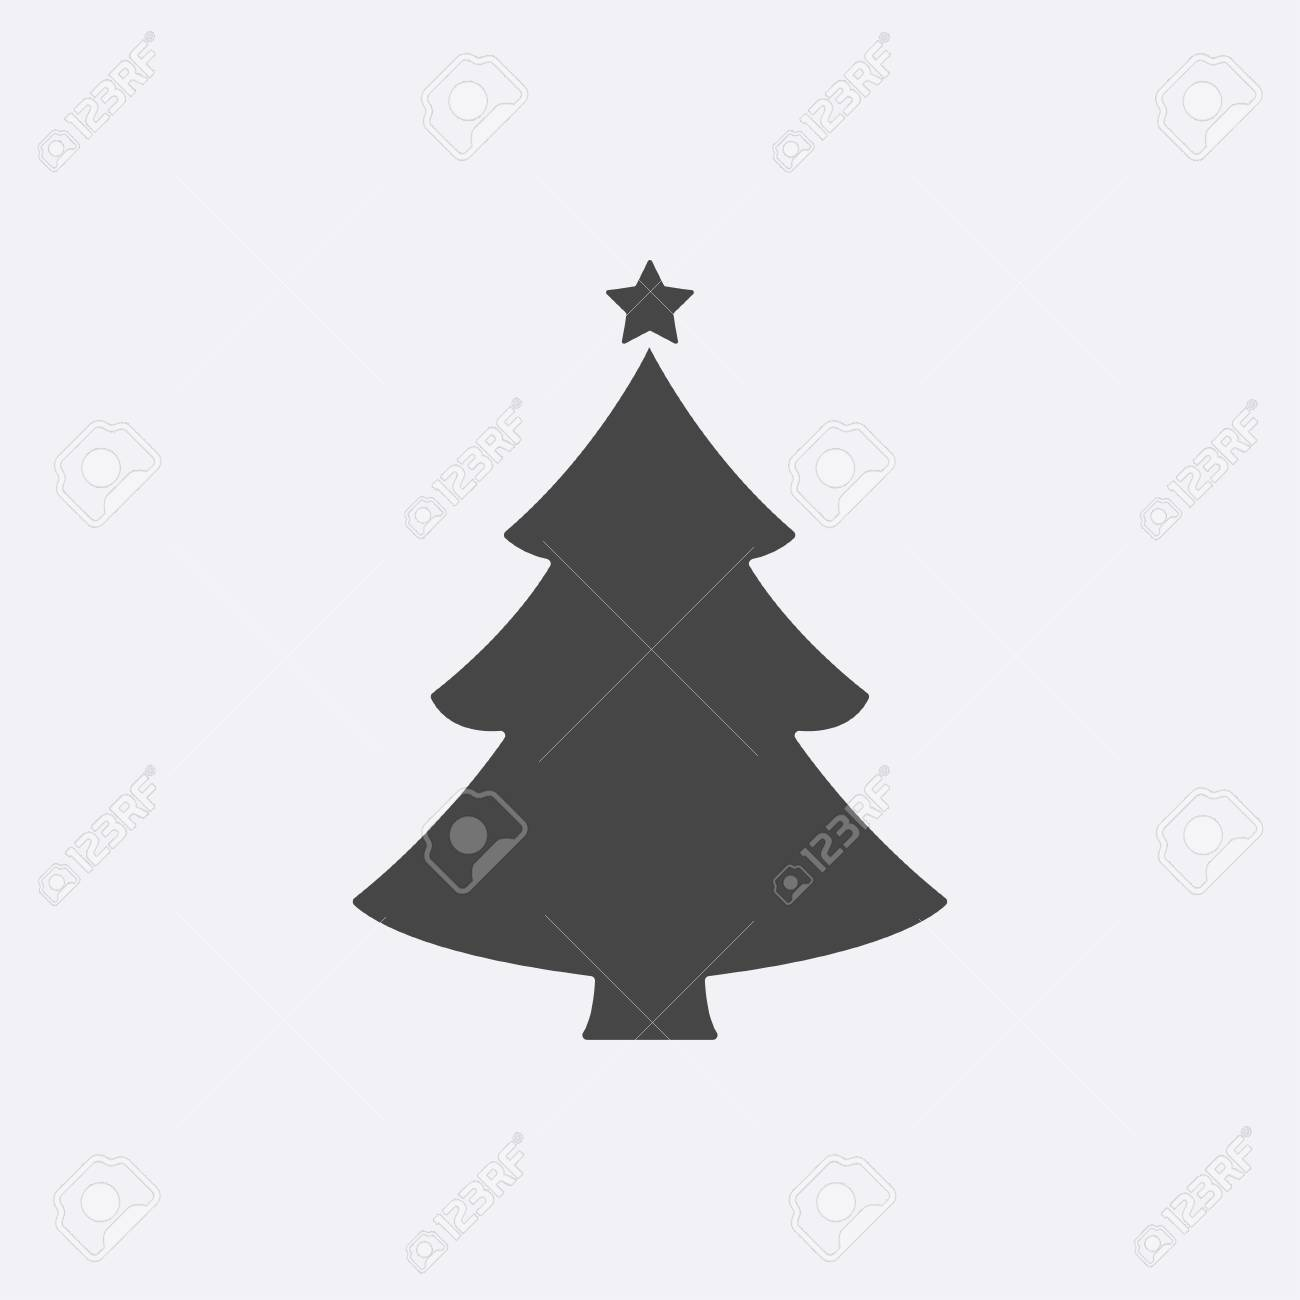 Christmas Tree Vector.Christmas Tree Modern Flat Pictogram Internet Concept Trendy